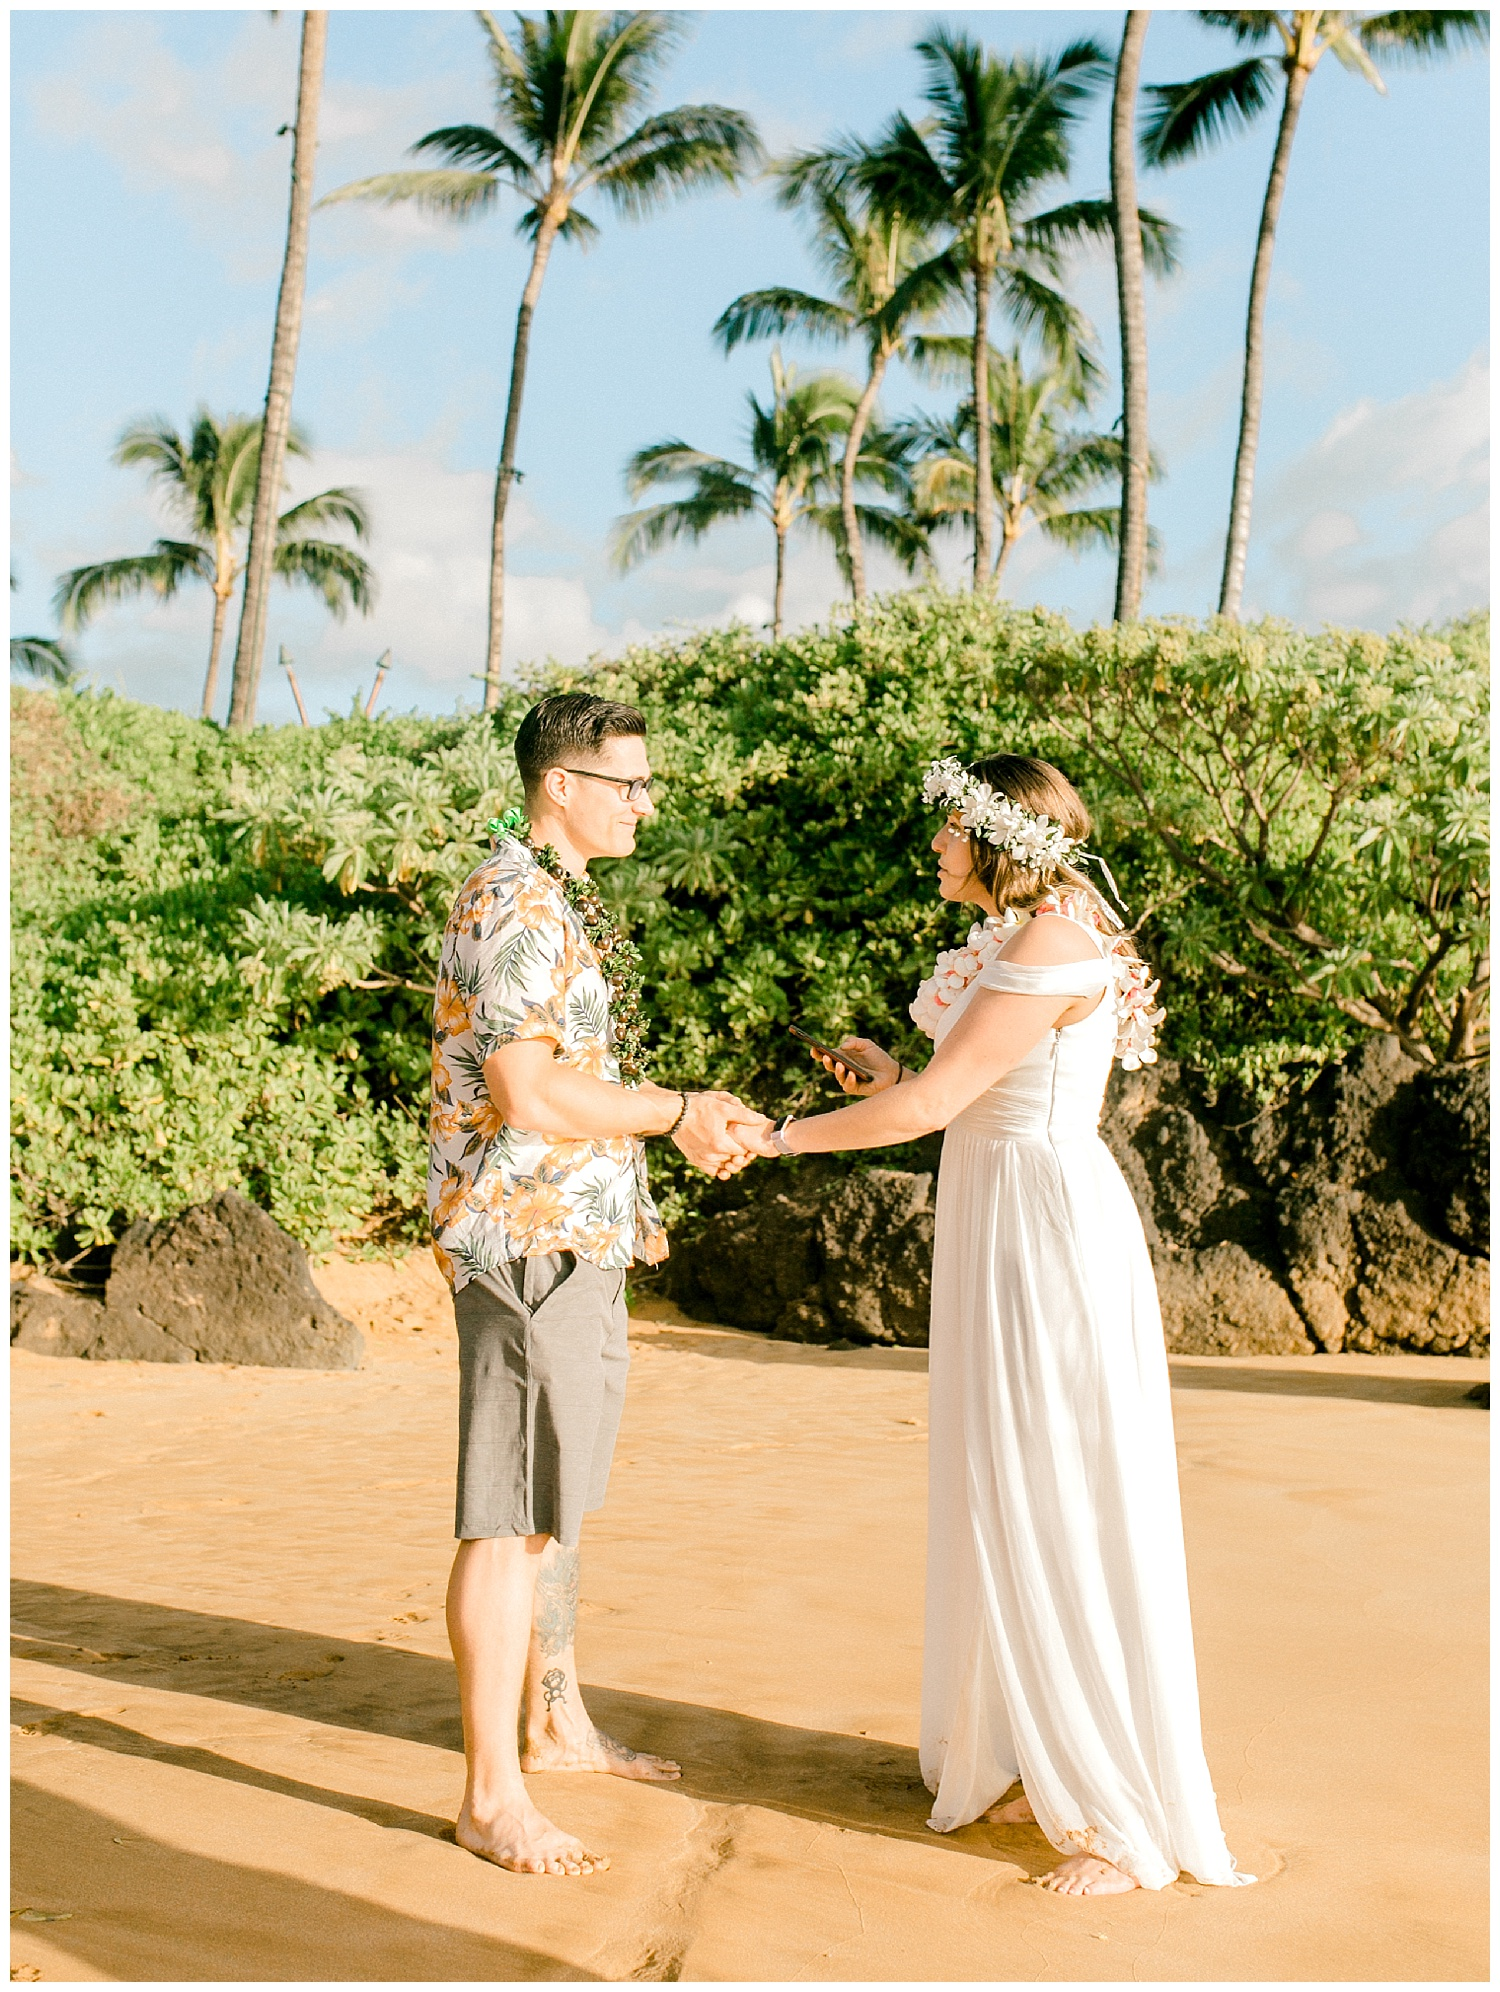 Maui-Elopement-Photography-Paipu-Beach-Maui_0002.jpg